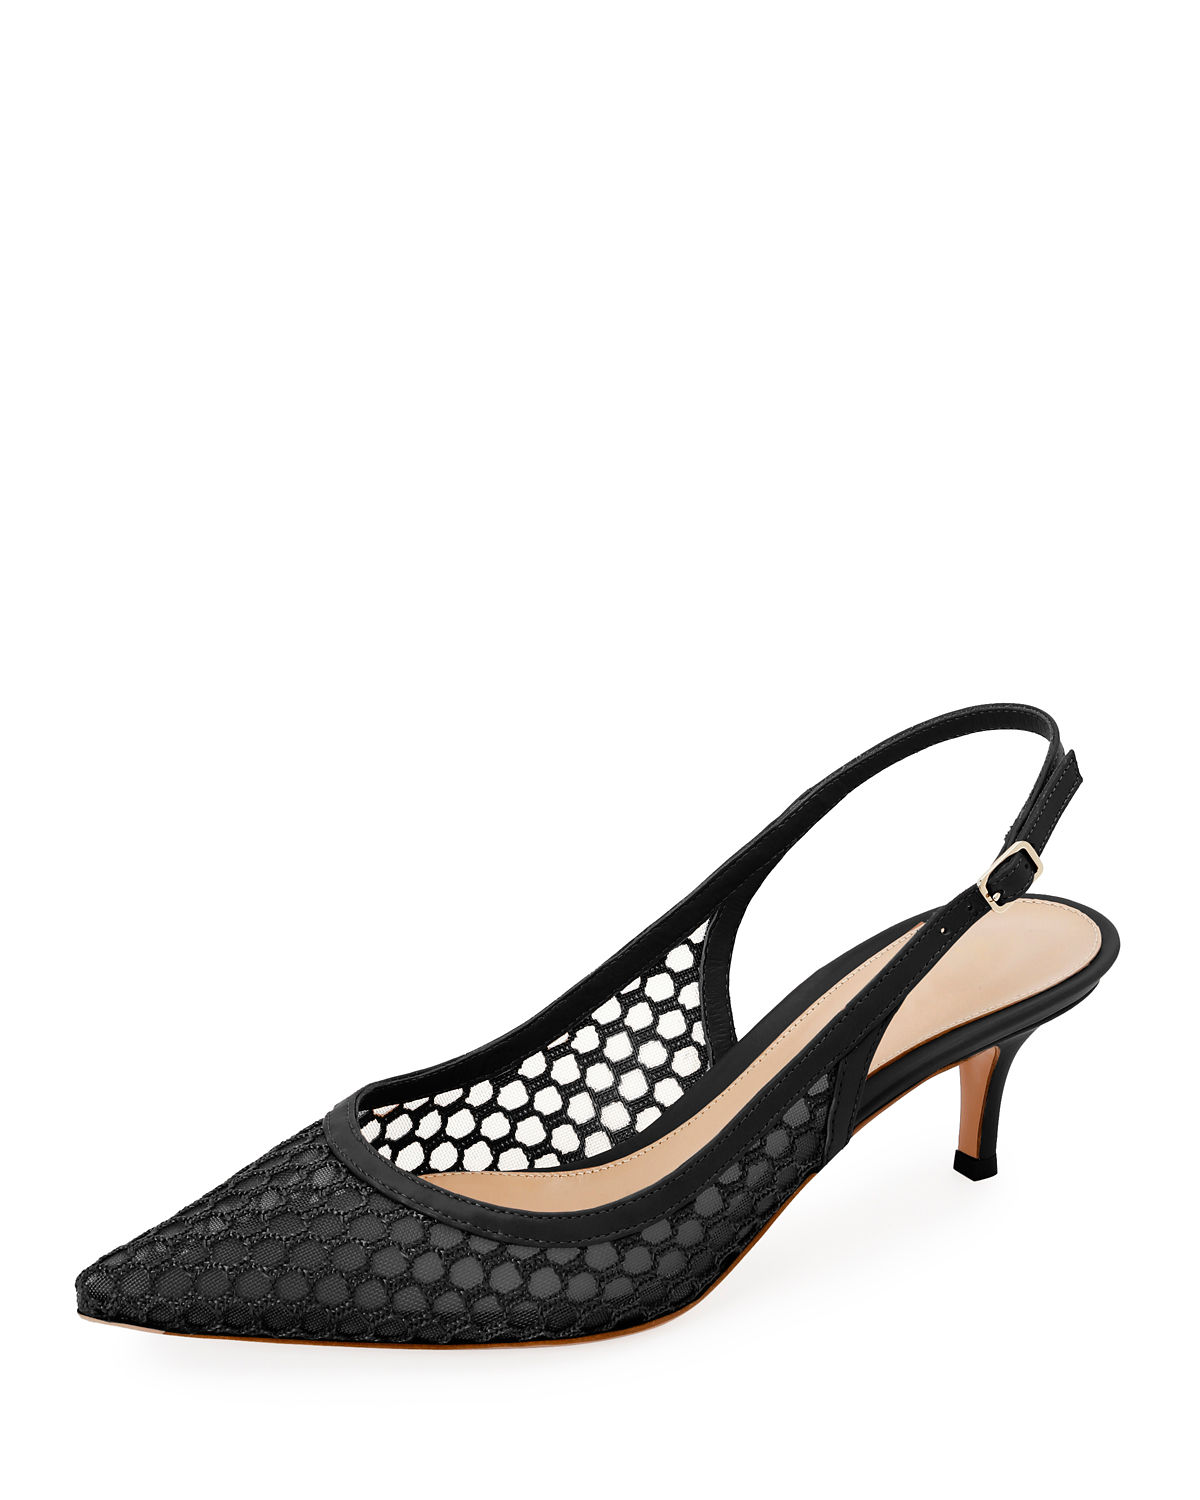 8d1c6a5df1 Gianvito Rossi Slingback Fishnet Pointed Pumps In Black | ModeSens